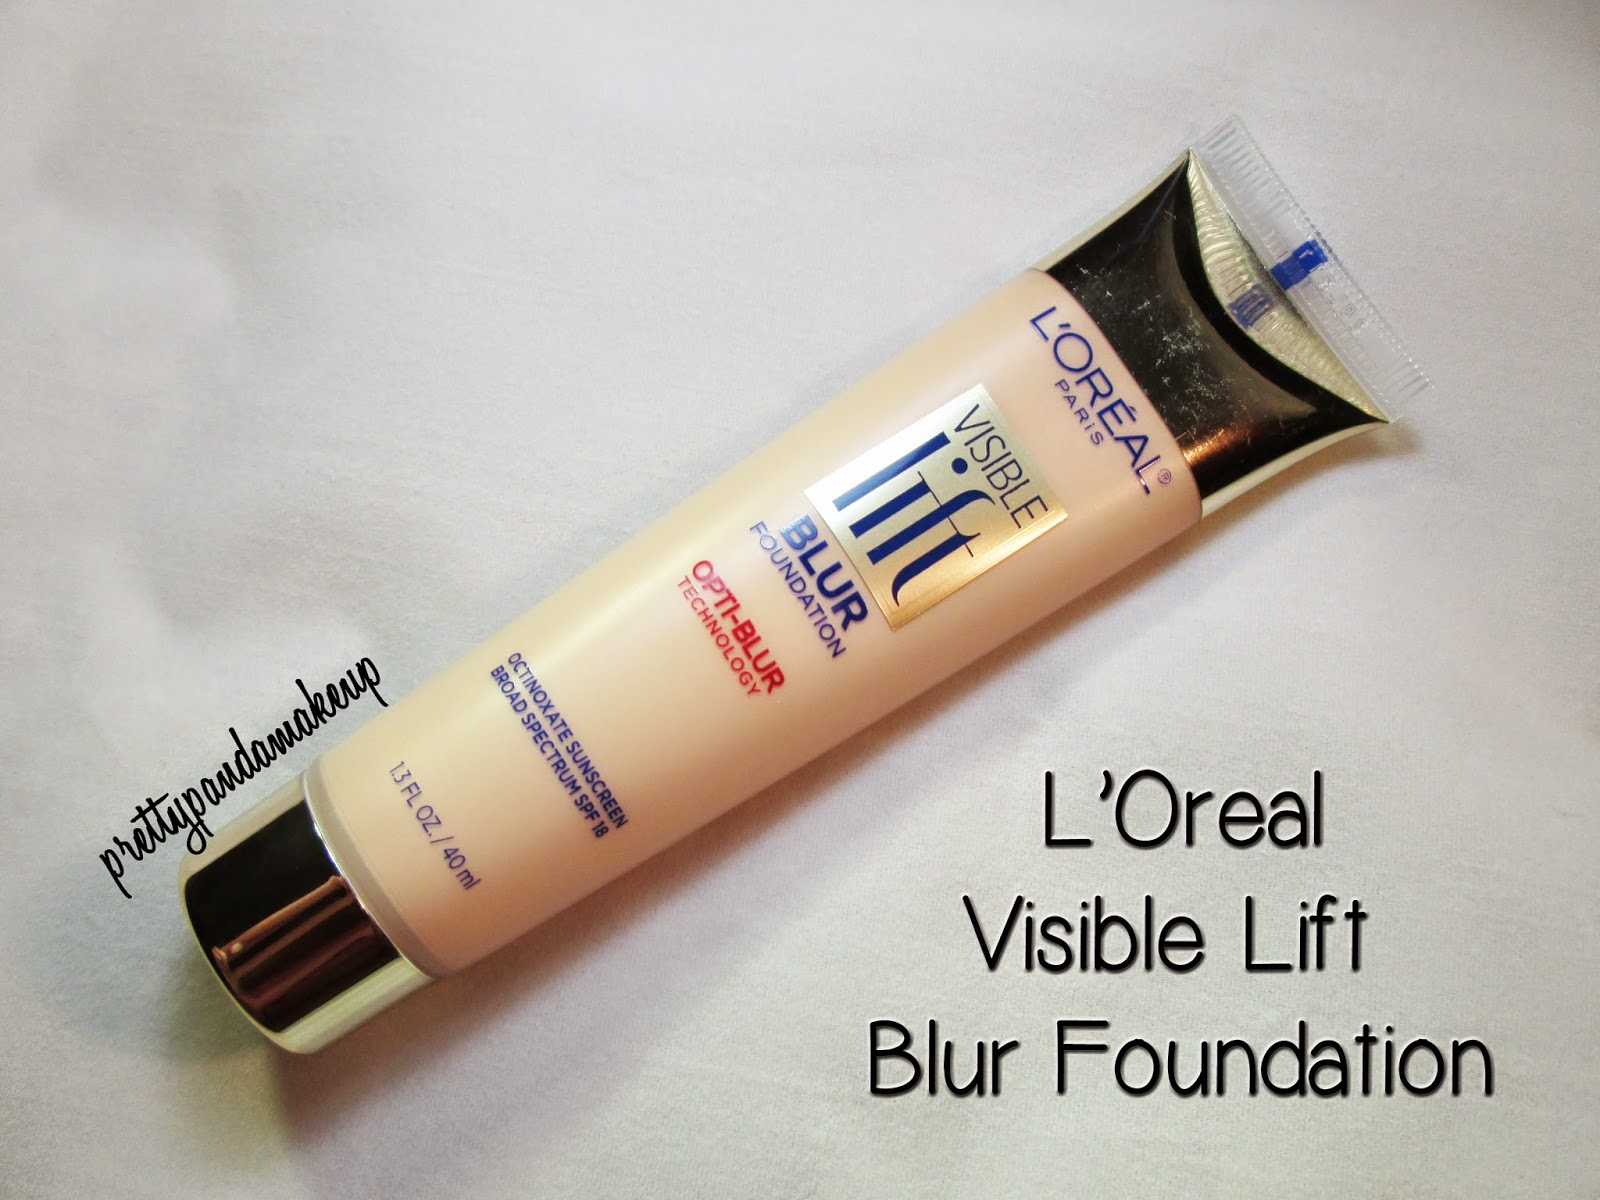 L'Oreal Visible Lift Blur Foundation in Light Ivory